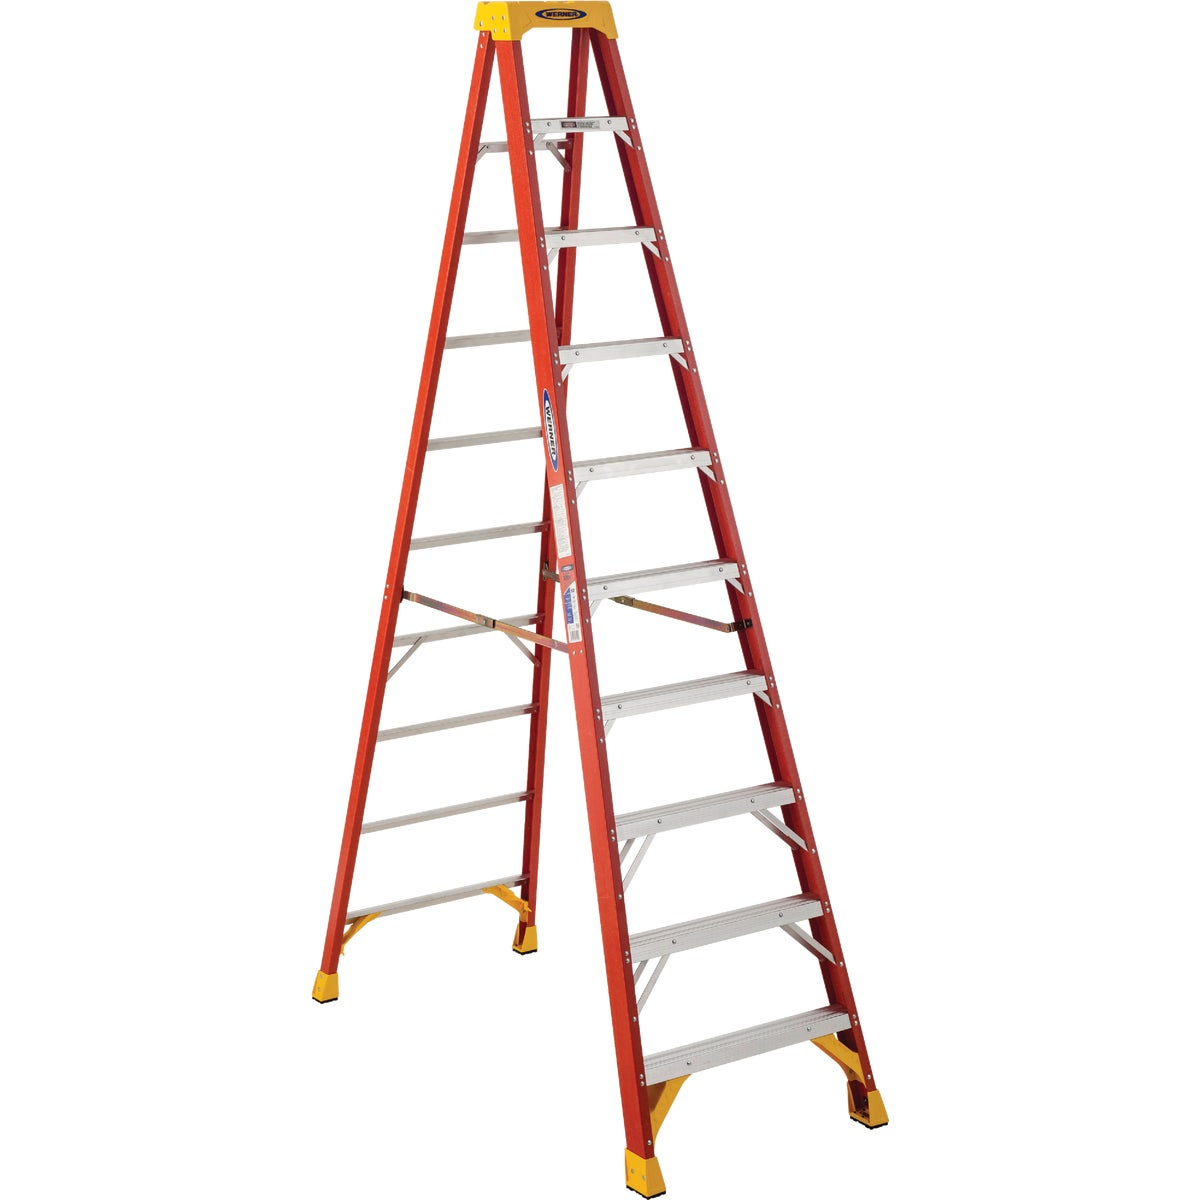 T-1A 10' FBGL STEPLADDER - 6210 by Werner Ladder